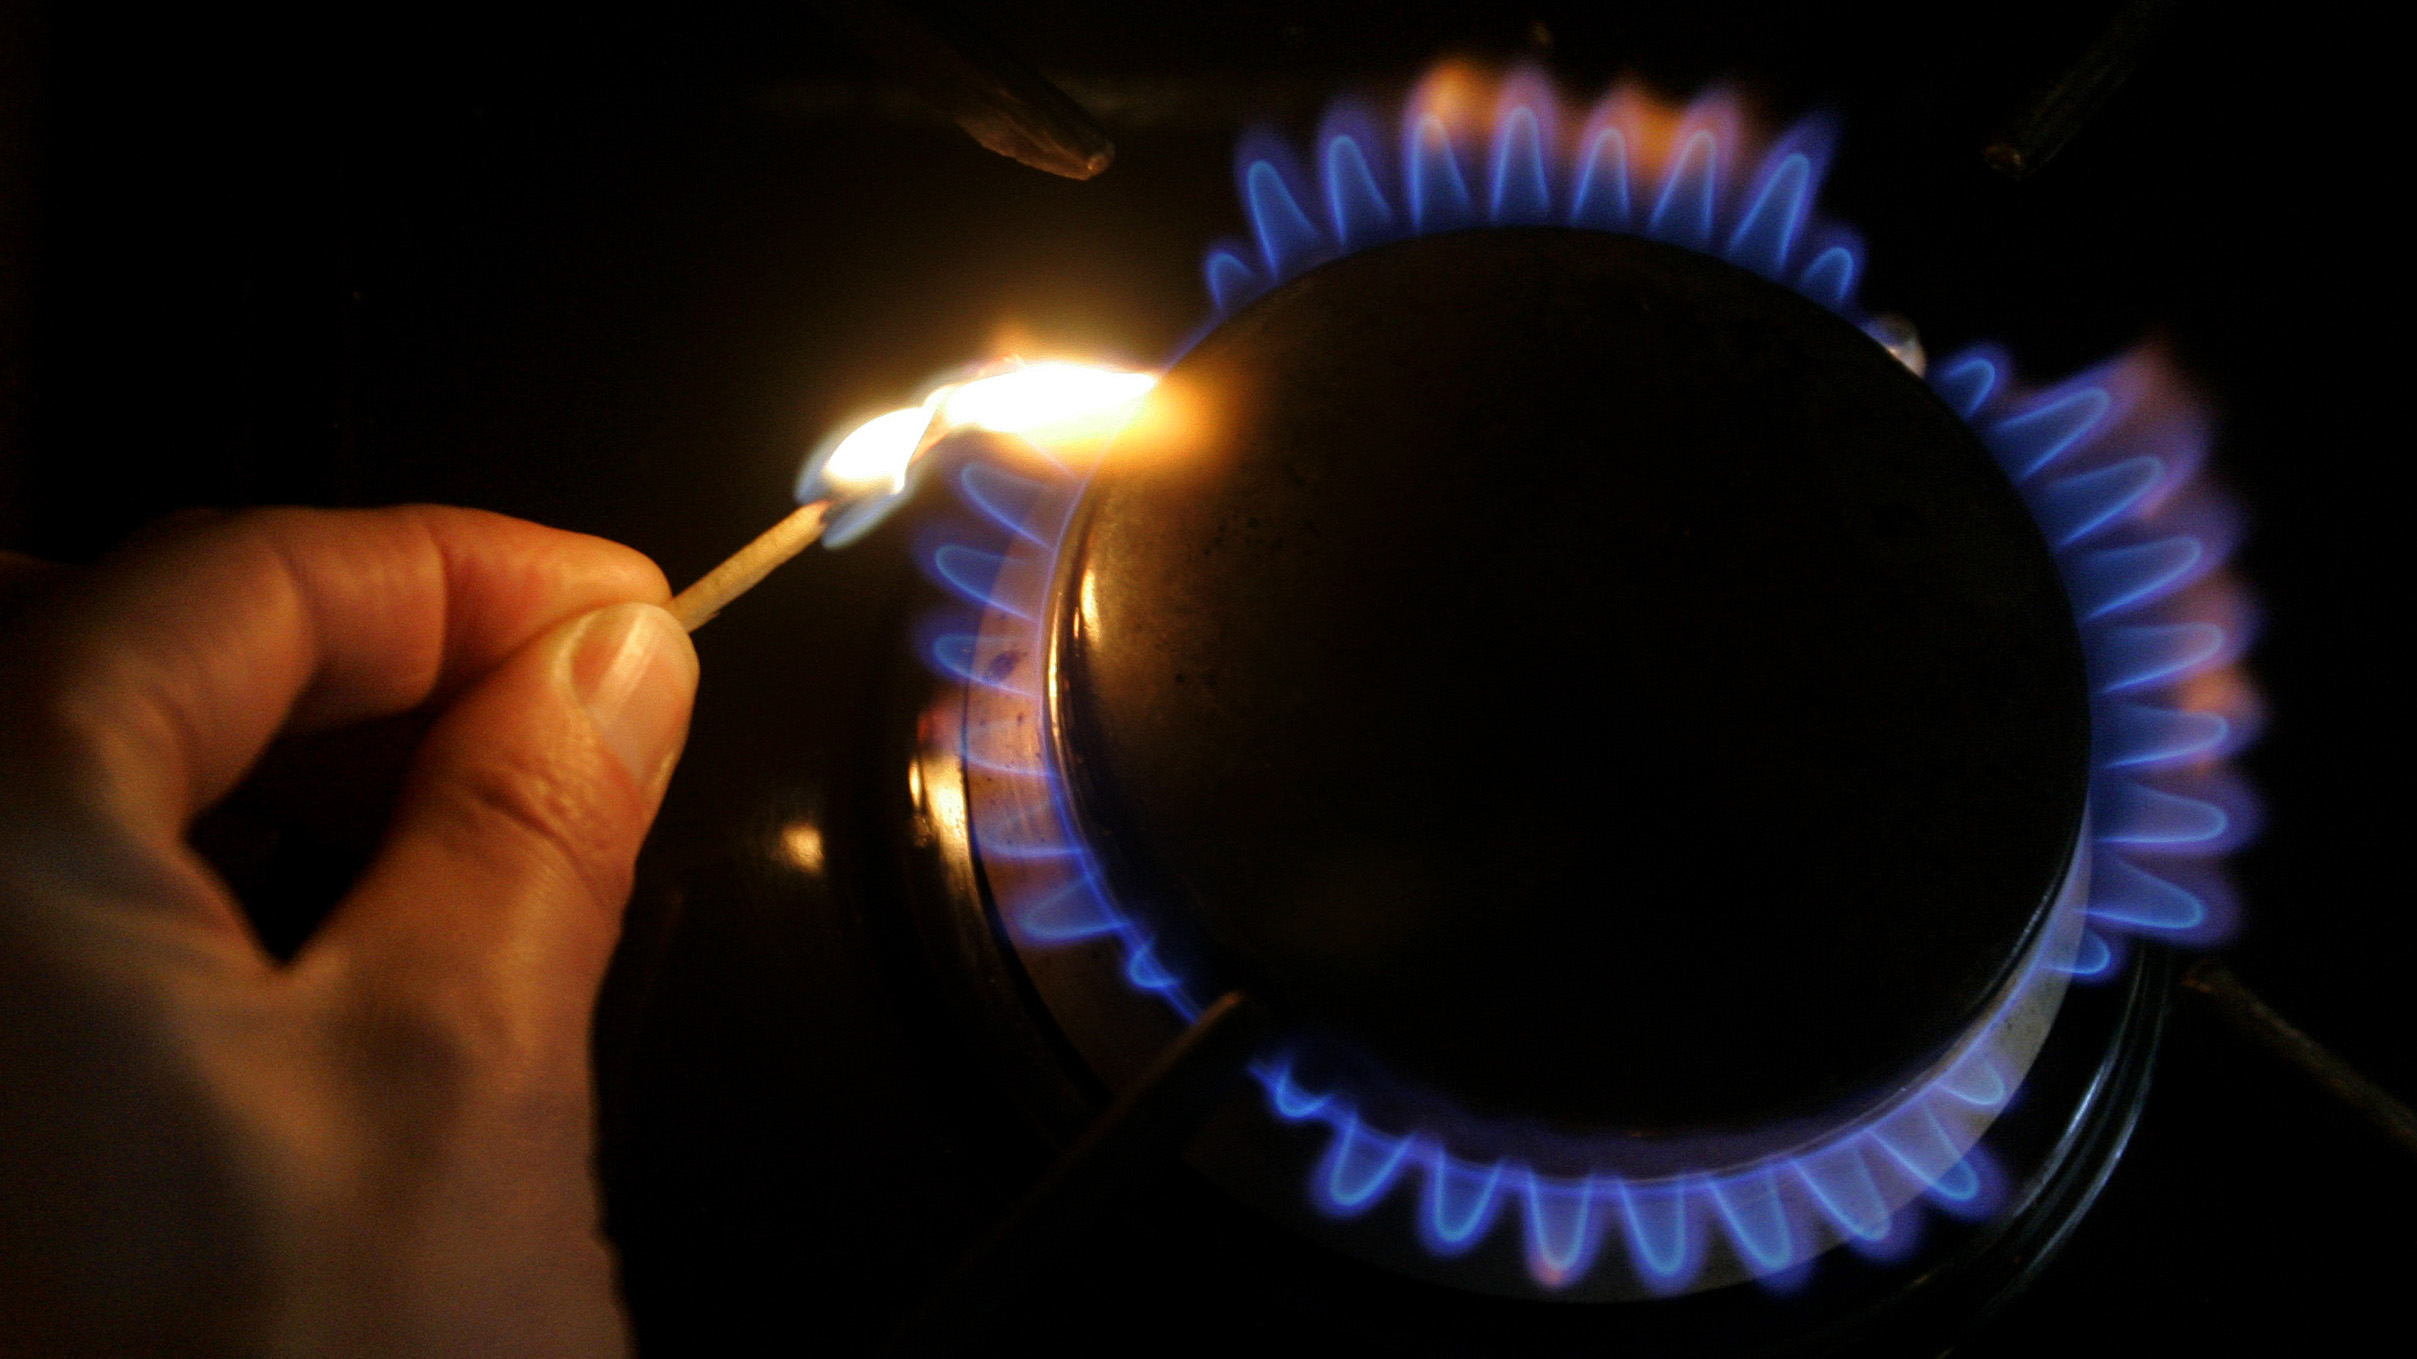 A gas ring is lit on a cooker in this photo illustration in London, Thursday, Feb. 21, 2008. British Gas has reported annual profits of 571m, up from 95m in 2006. Centrica, British Gas' parent company, reported a 40% rise in operating profits to 1.95bn.(AP Photo/Kirsty Wigglesworth)